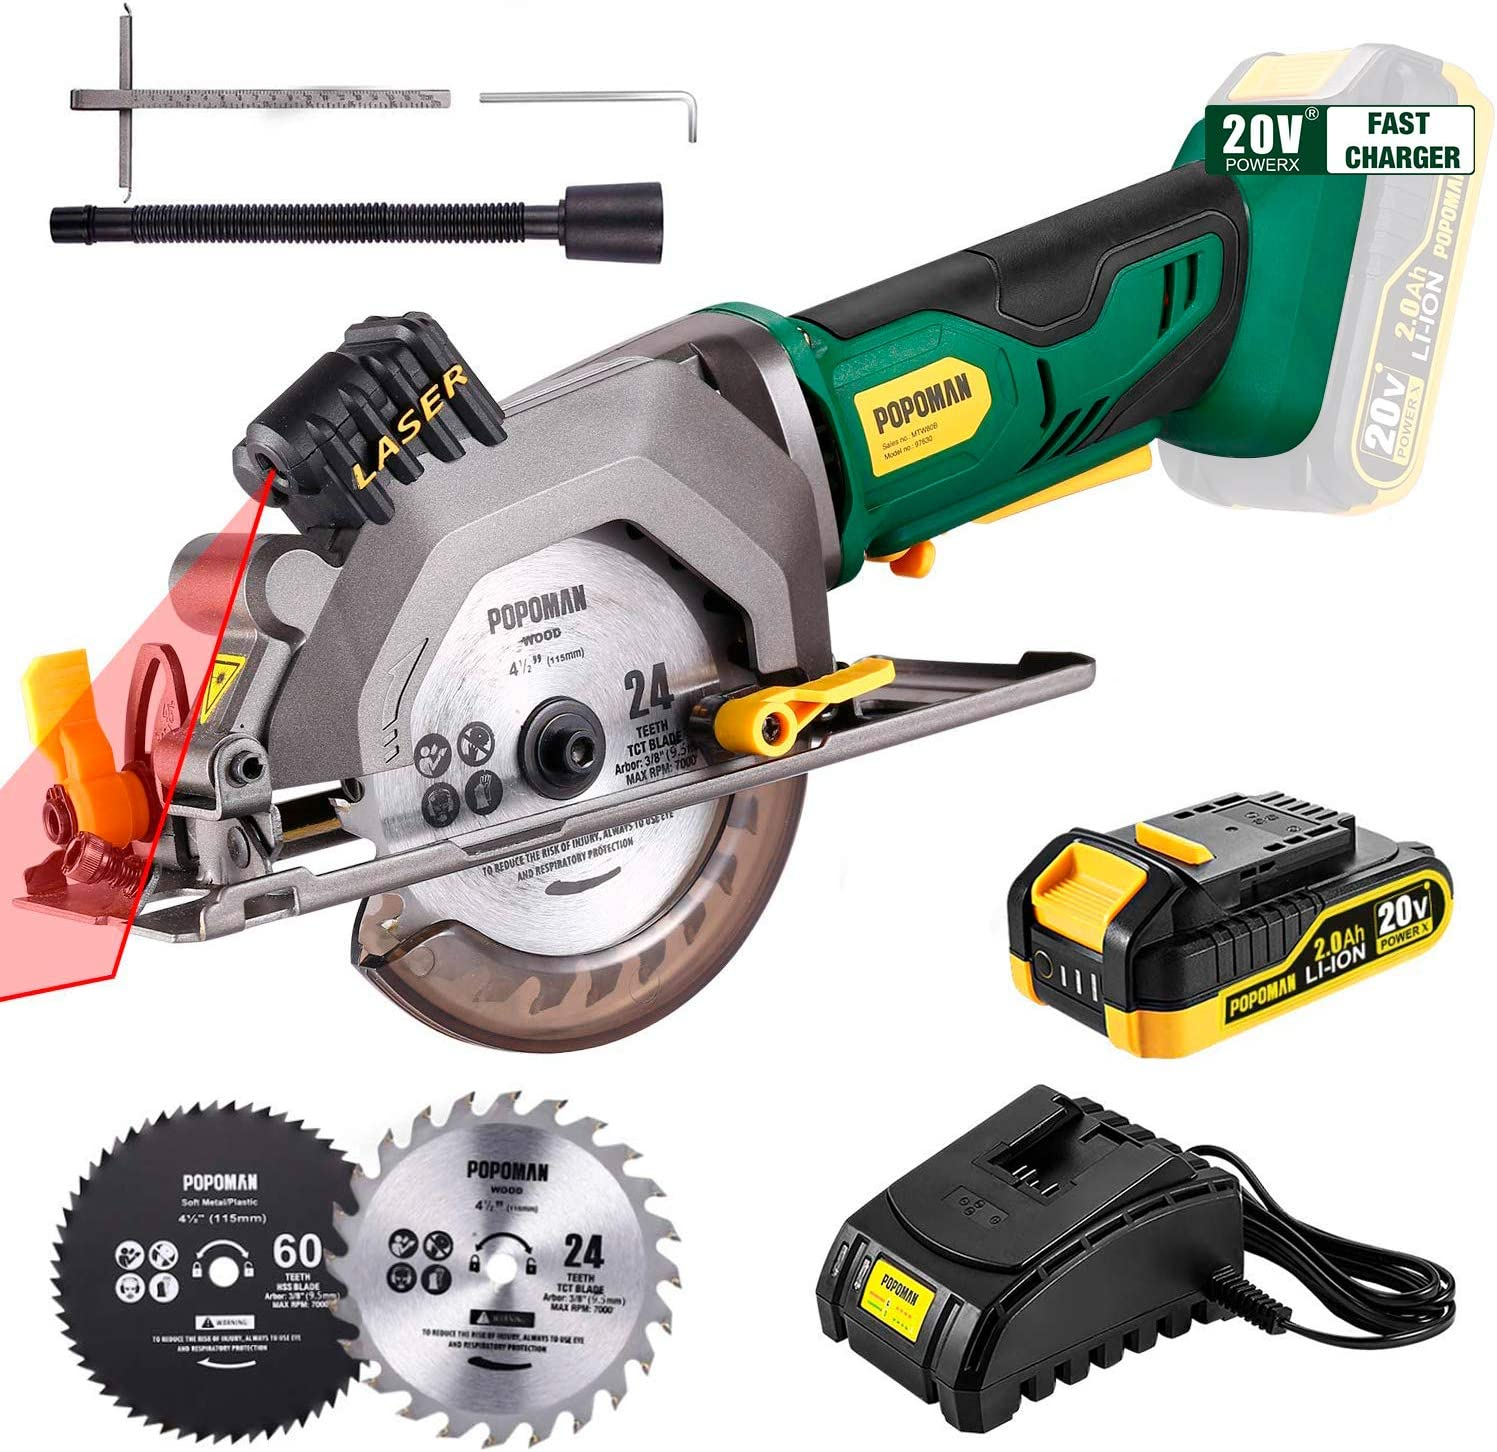 "POPOMAN Cordless Circular Saw, 4-1/2"" Cordless Circular Saw with Laser Guide"